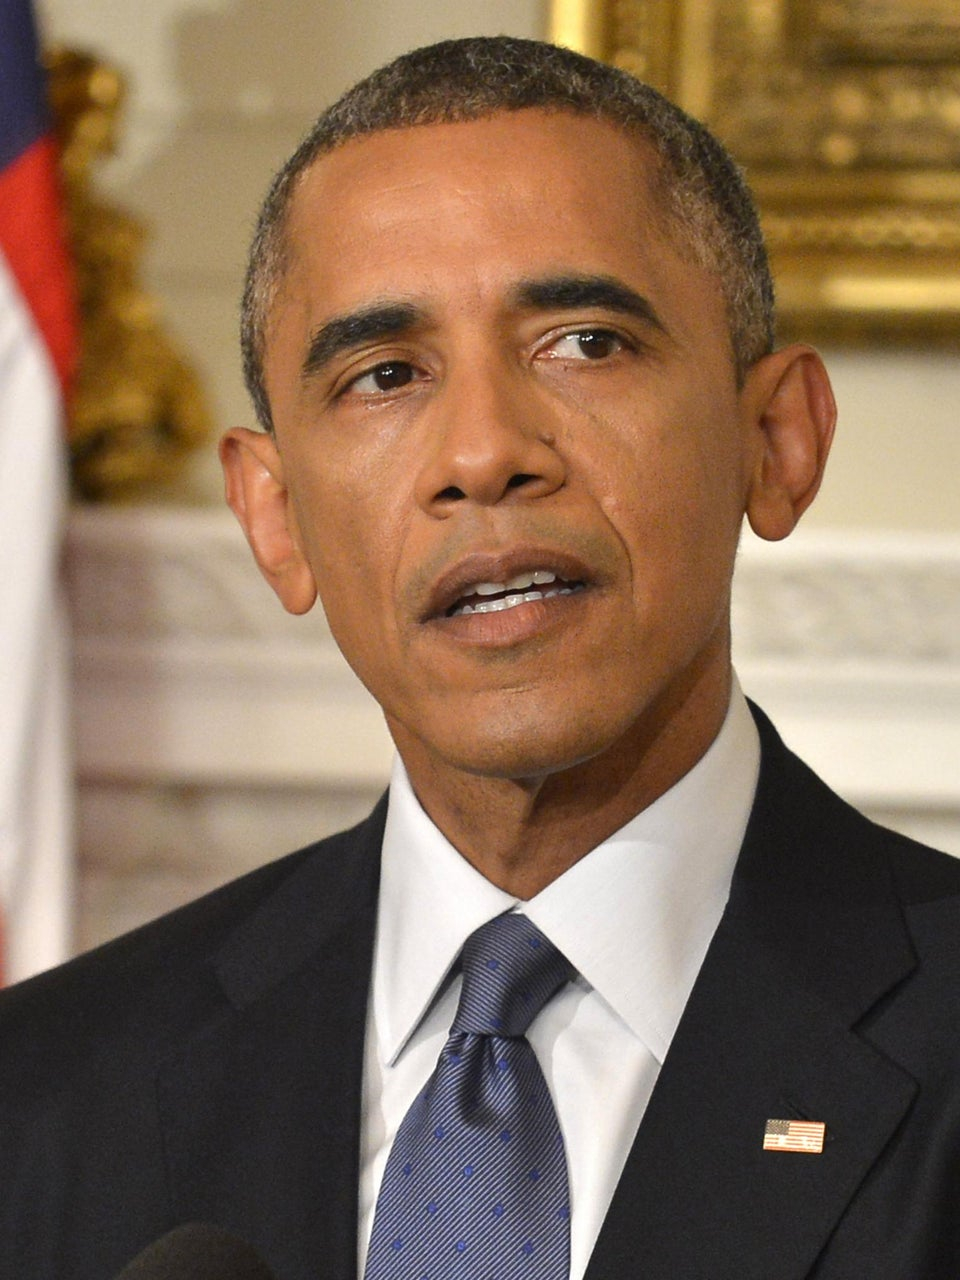 ESSENCE Poll: What More Would You Like to See President Obama Doing for Ferguson?